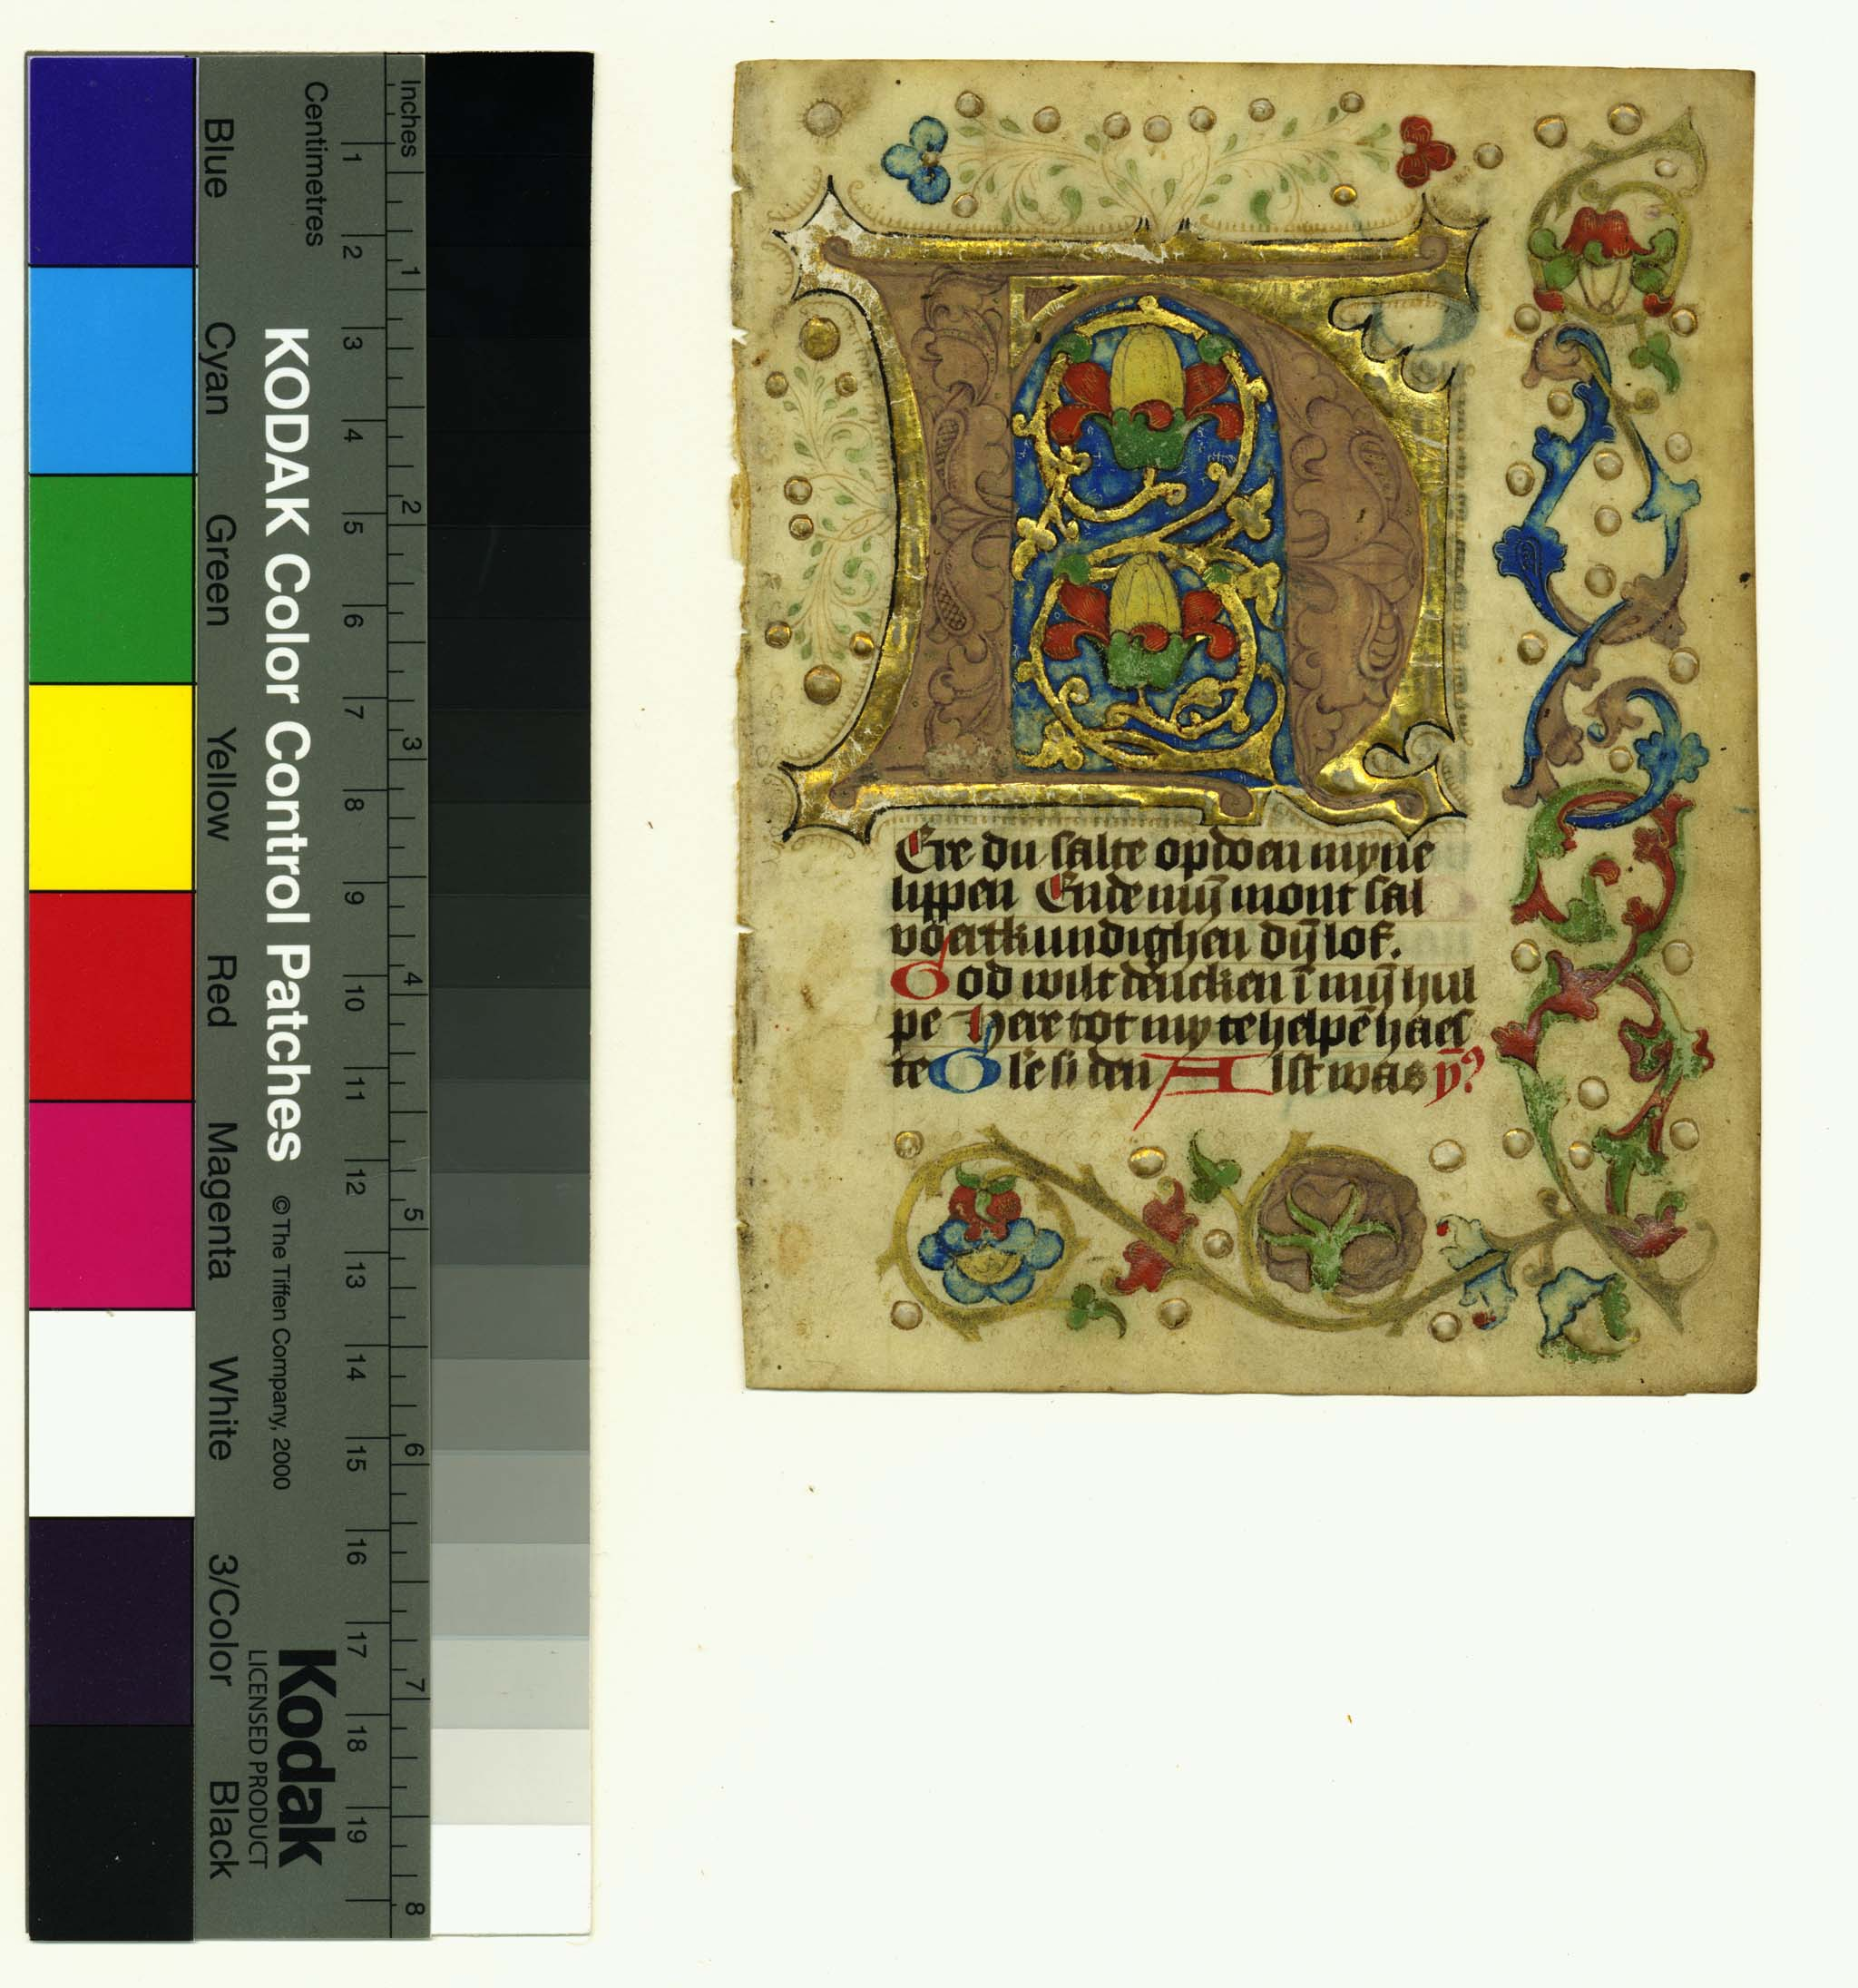 New York, Fordham University, Walsh Library, Archives & Spec. Coll., MS Item 26, f. 1